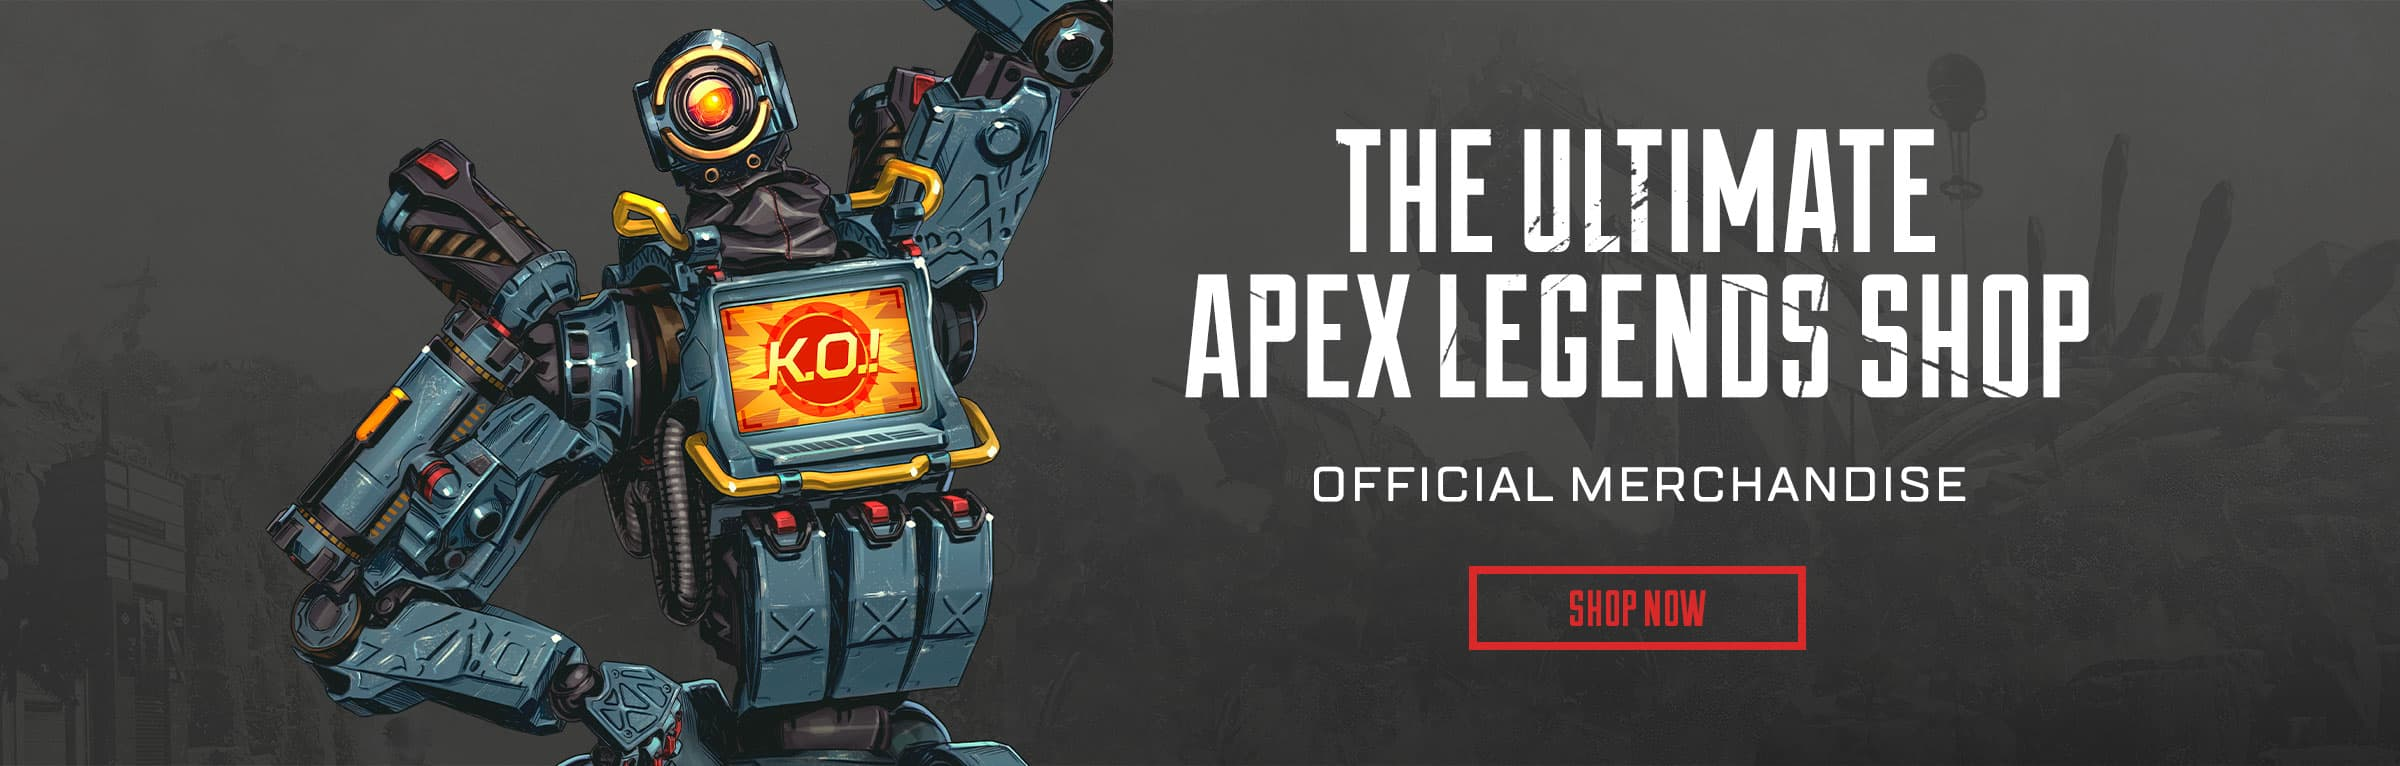 The Ultimate Apex Legends Shop